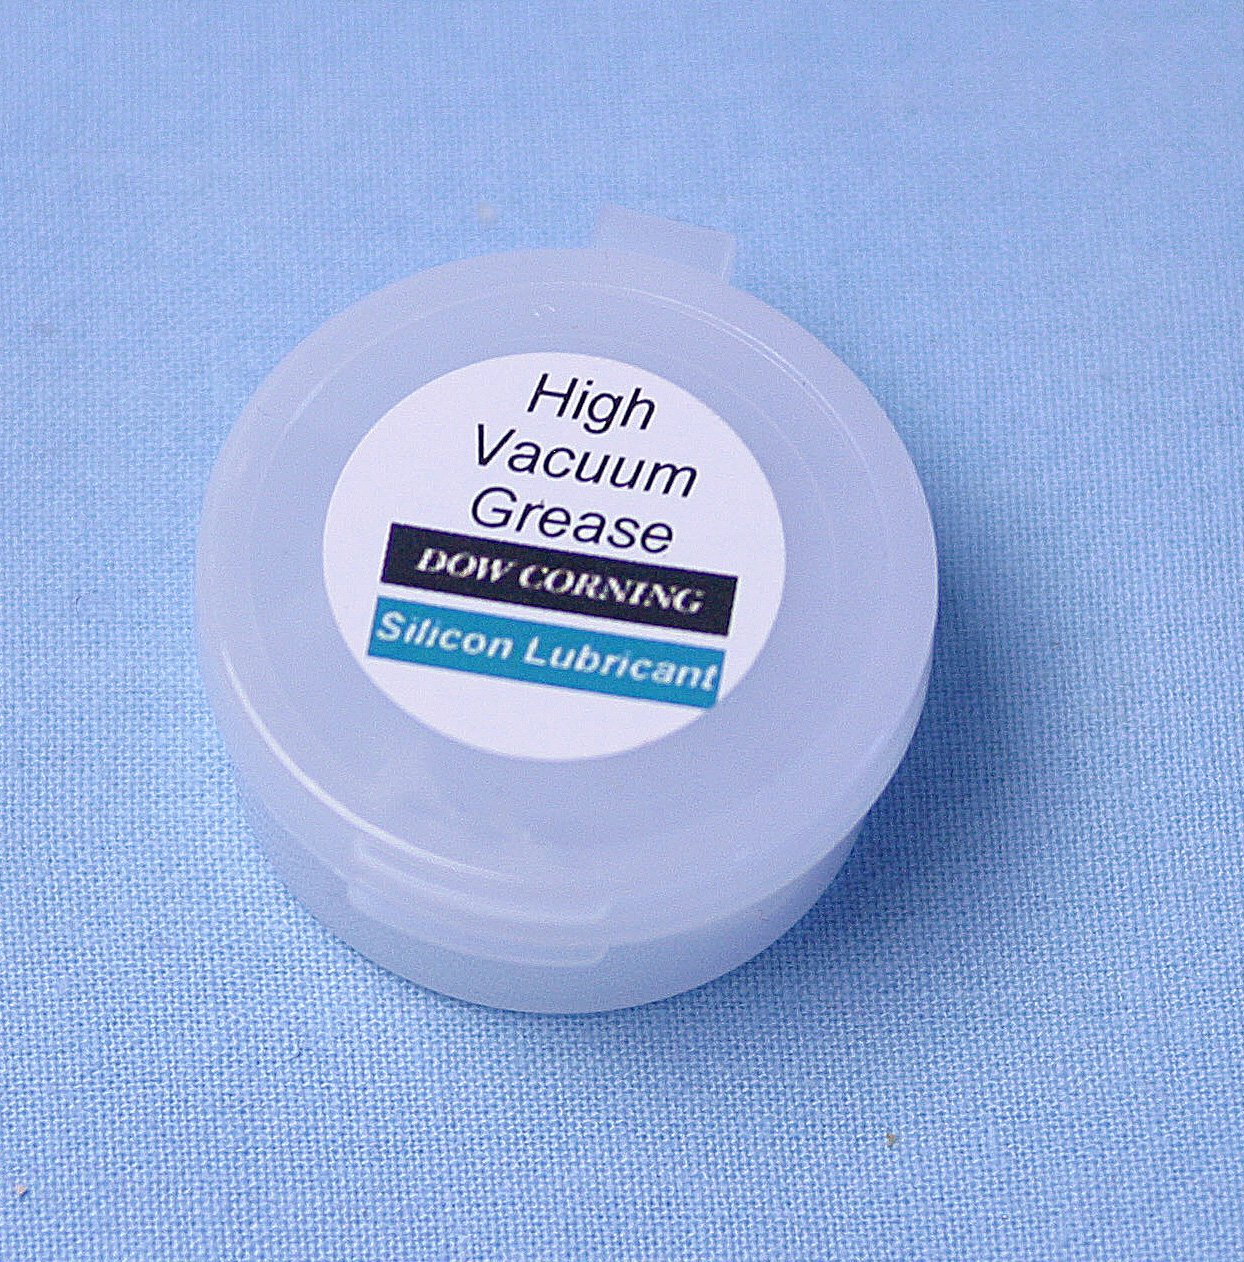 Dow Corning High Vacuum Grease 1/2 oz by Dow Corning